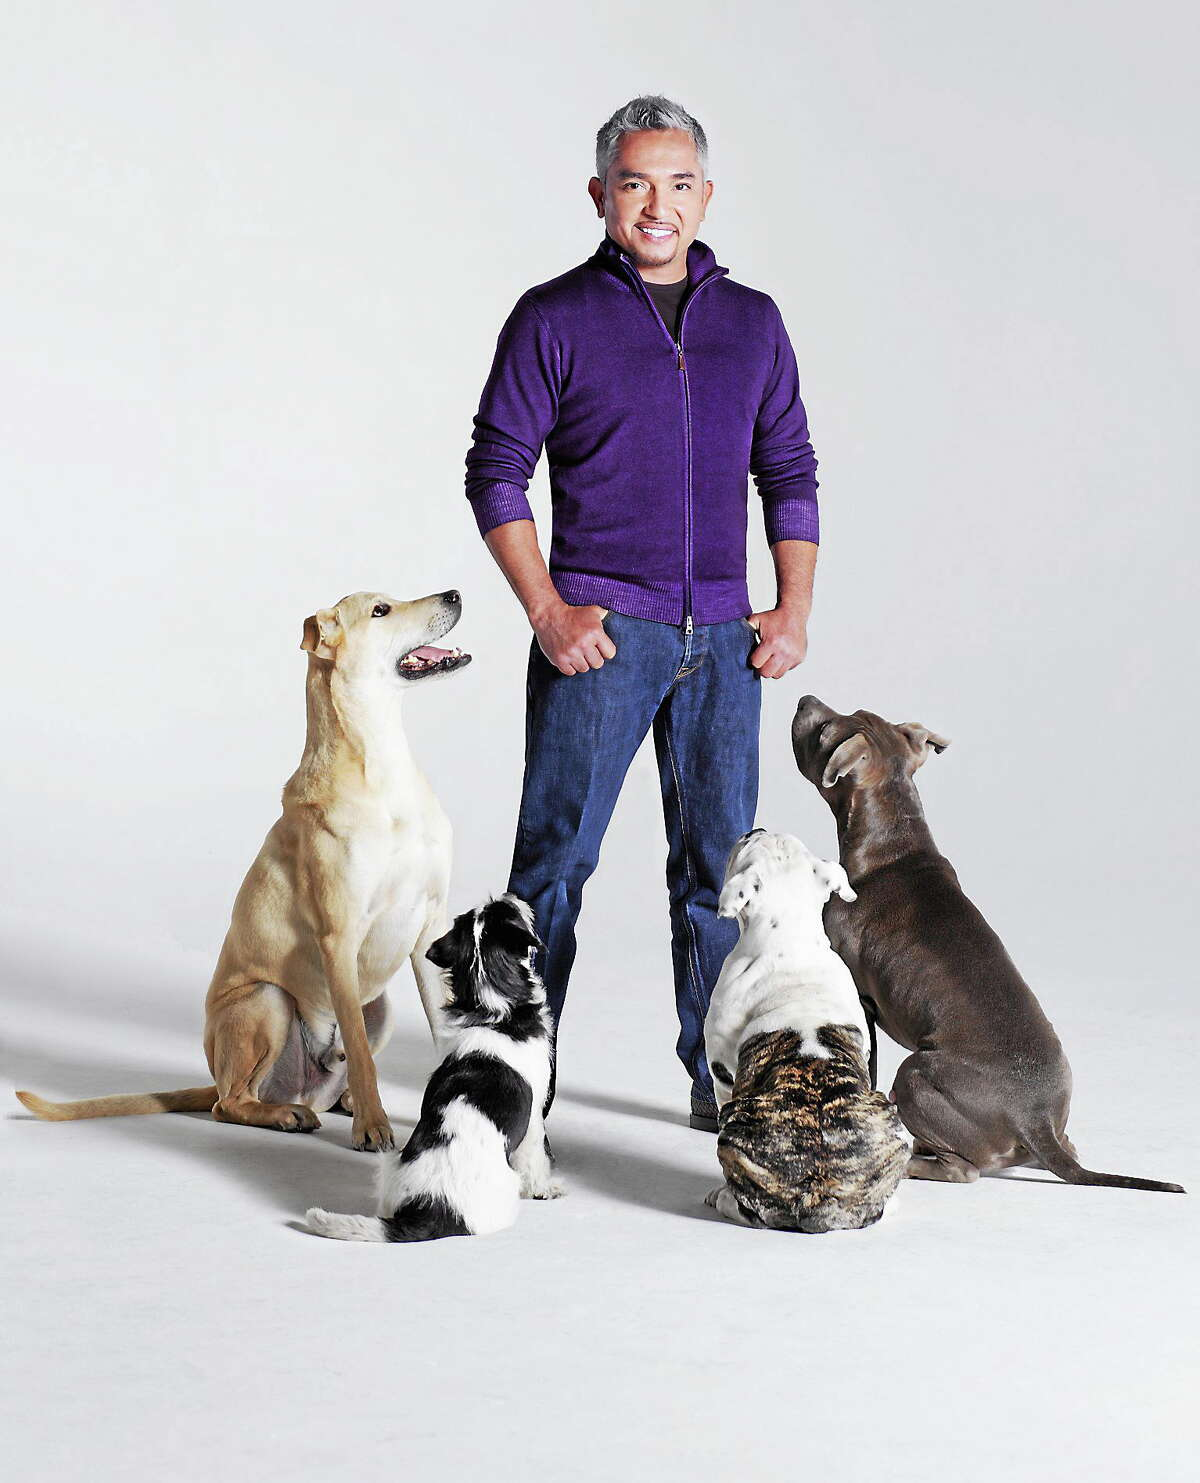 Submitted photo - Cesar Millan Cesar Millan, whose reputation as a